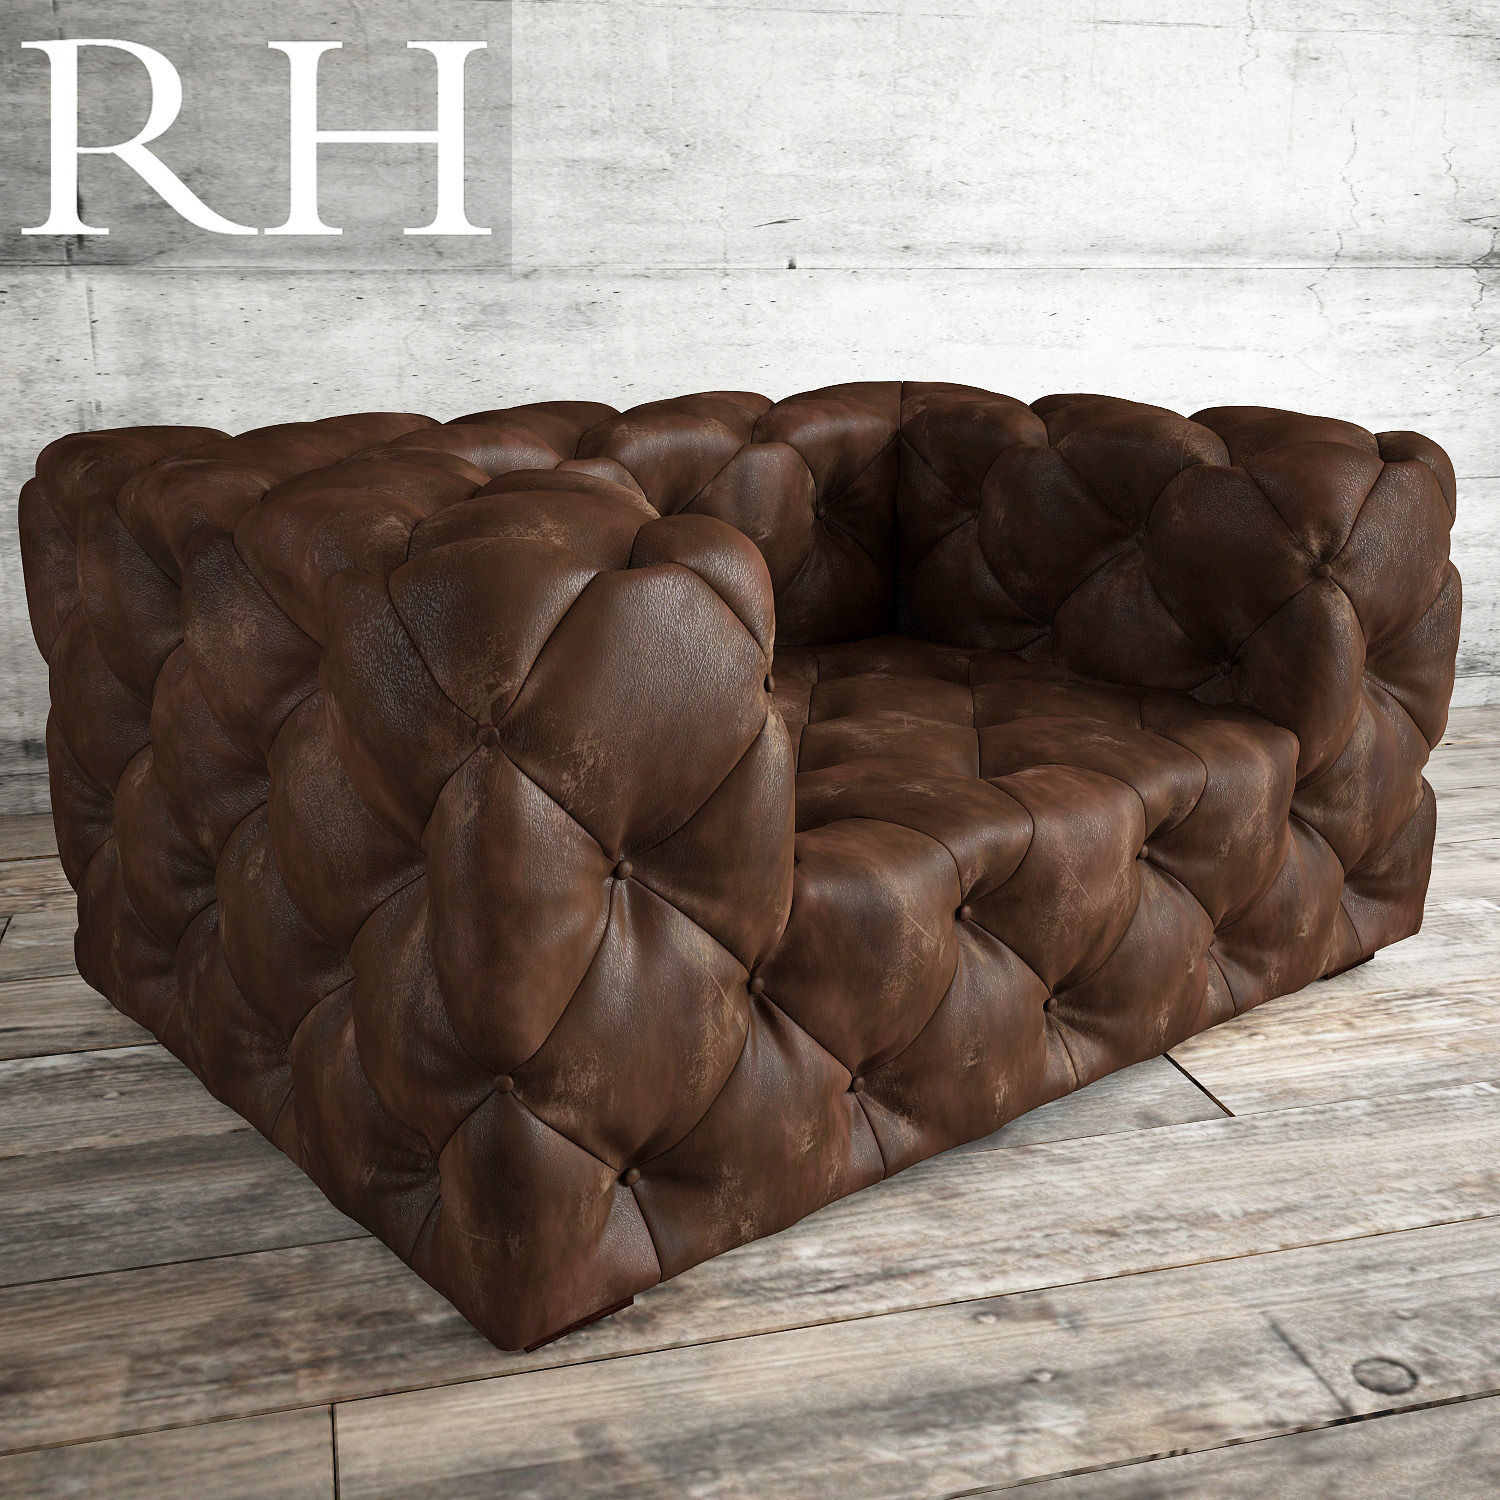 Soho Tufted Leather Chair Model